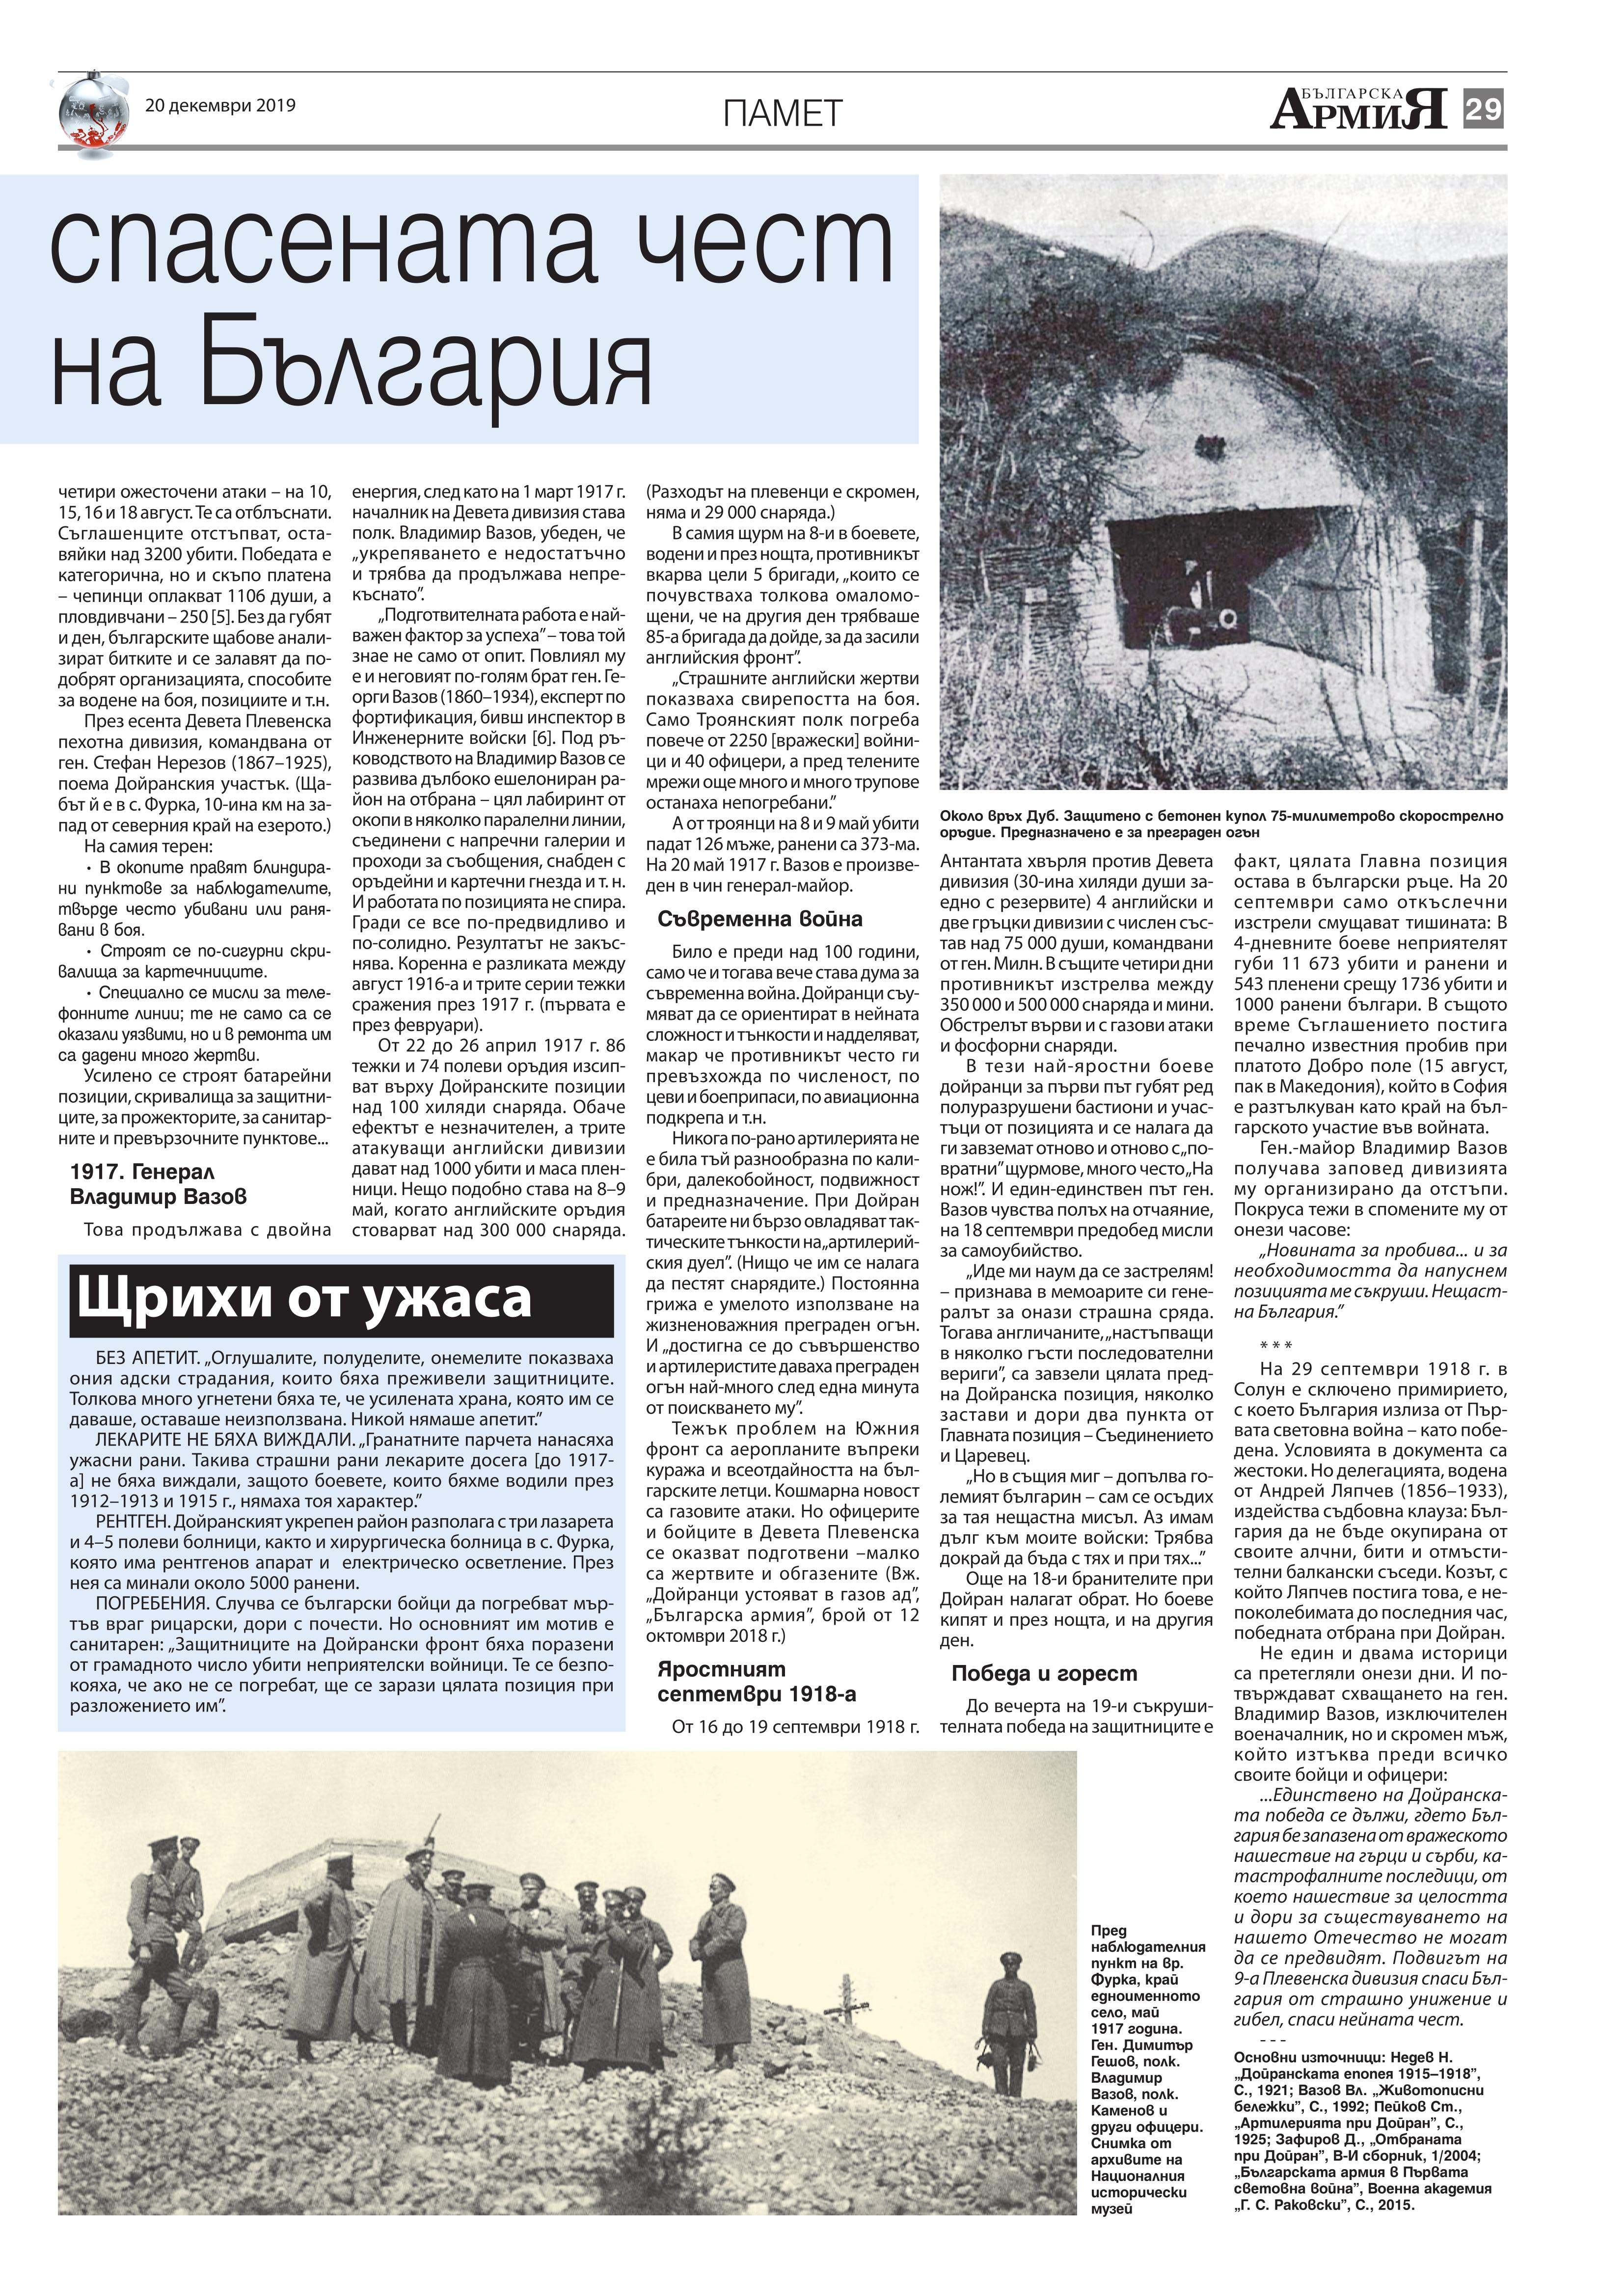 https://armymedia.bg/wp-content/uploads/2015/06/29.page1_-102.jpg